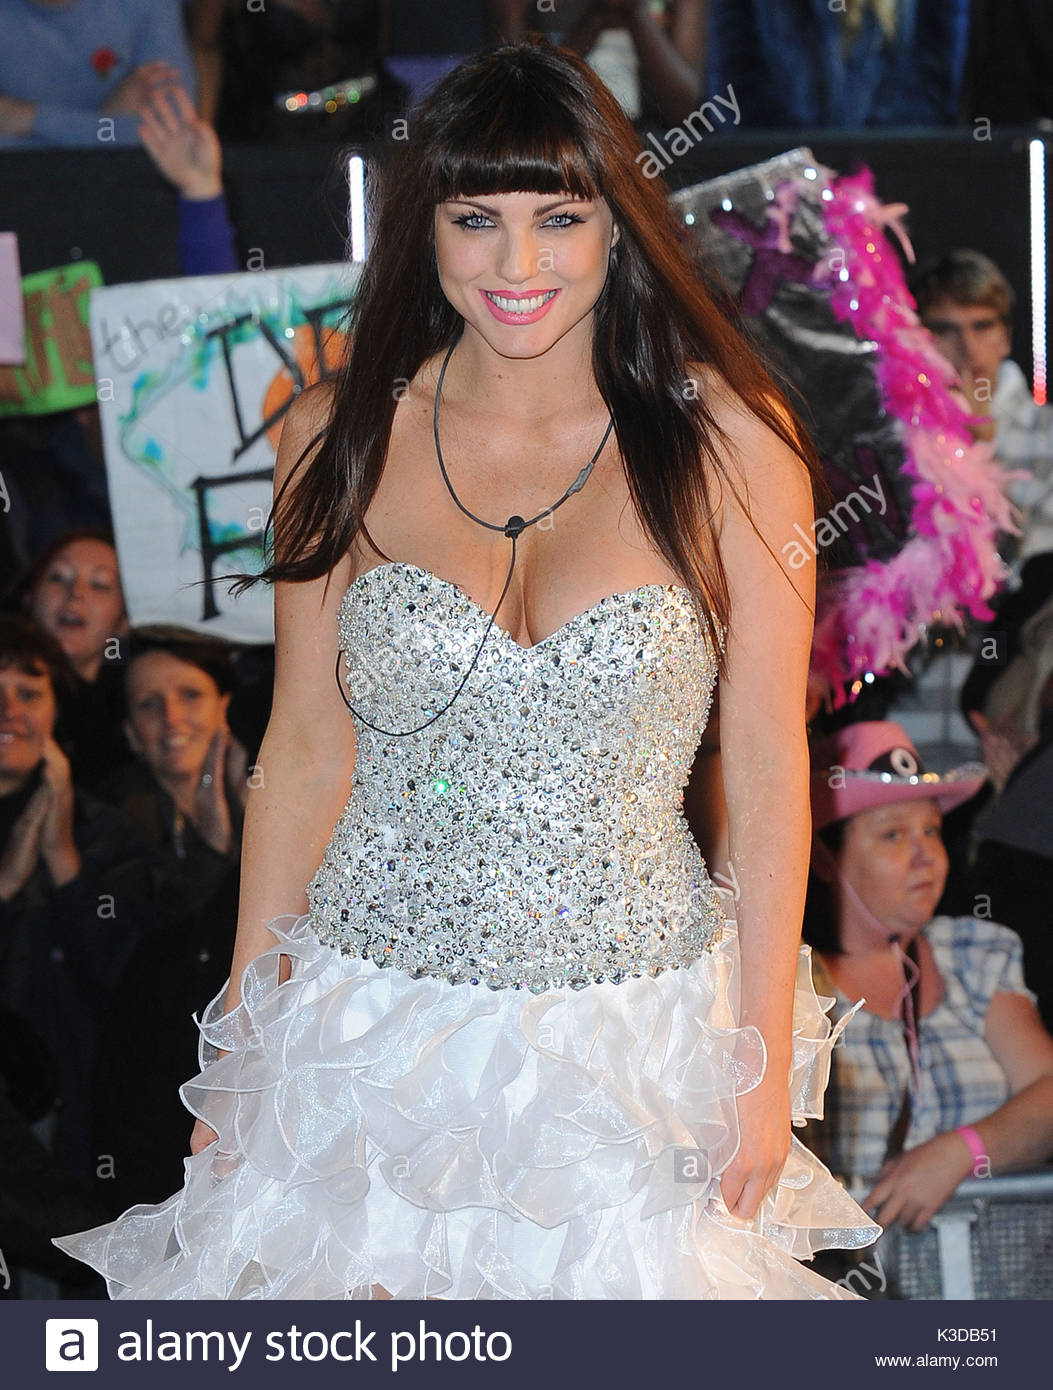 Louise cliffe big brother - 2019 year